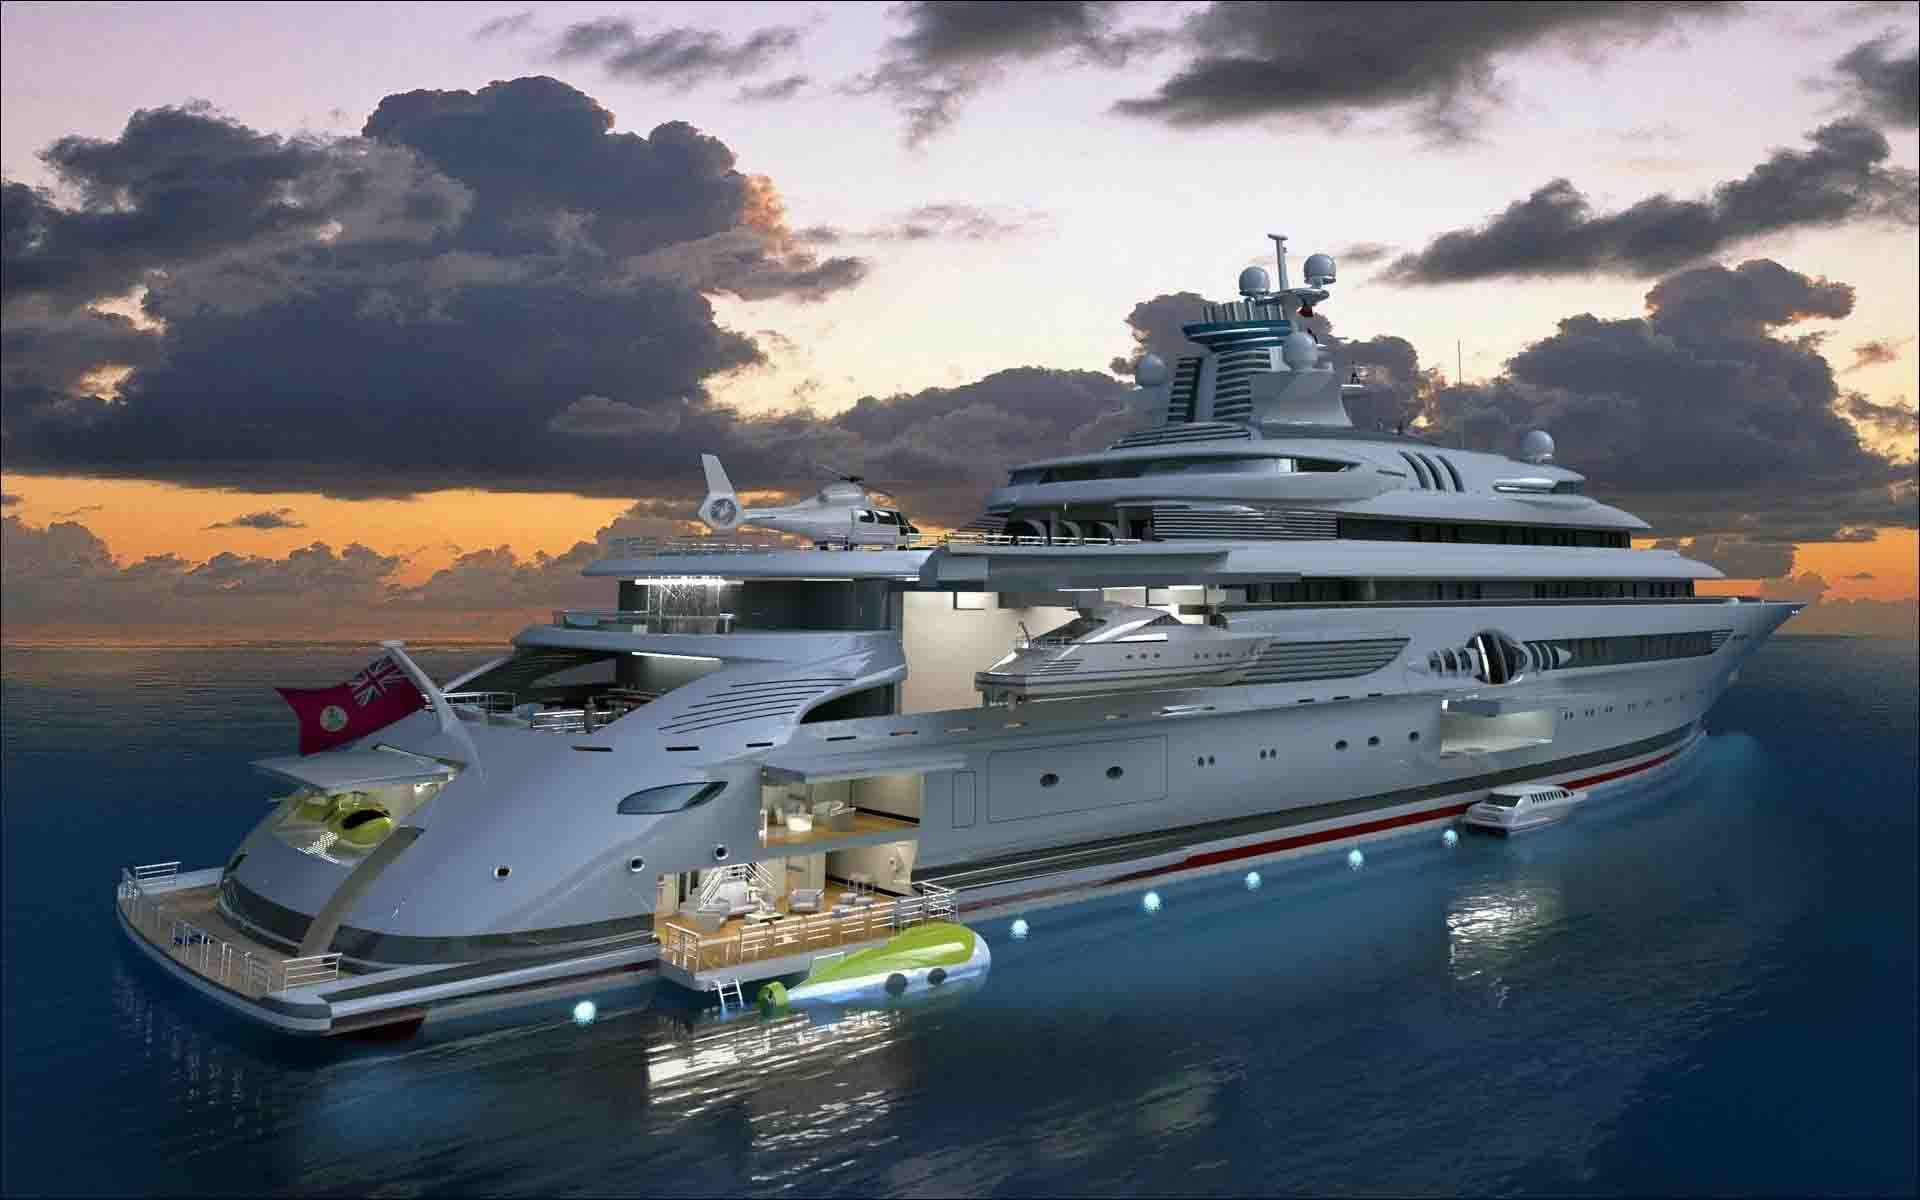 Luxury Yachts Hd Wallpapers Is The Others Category Wallpaper You